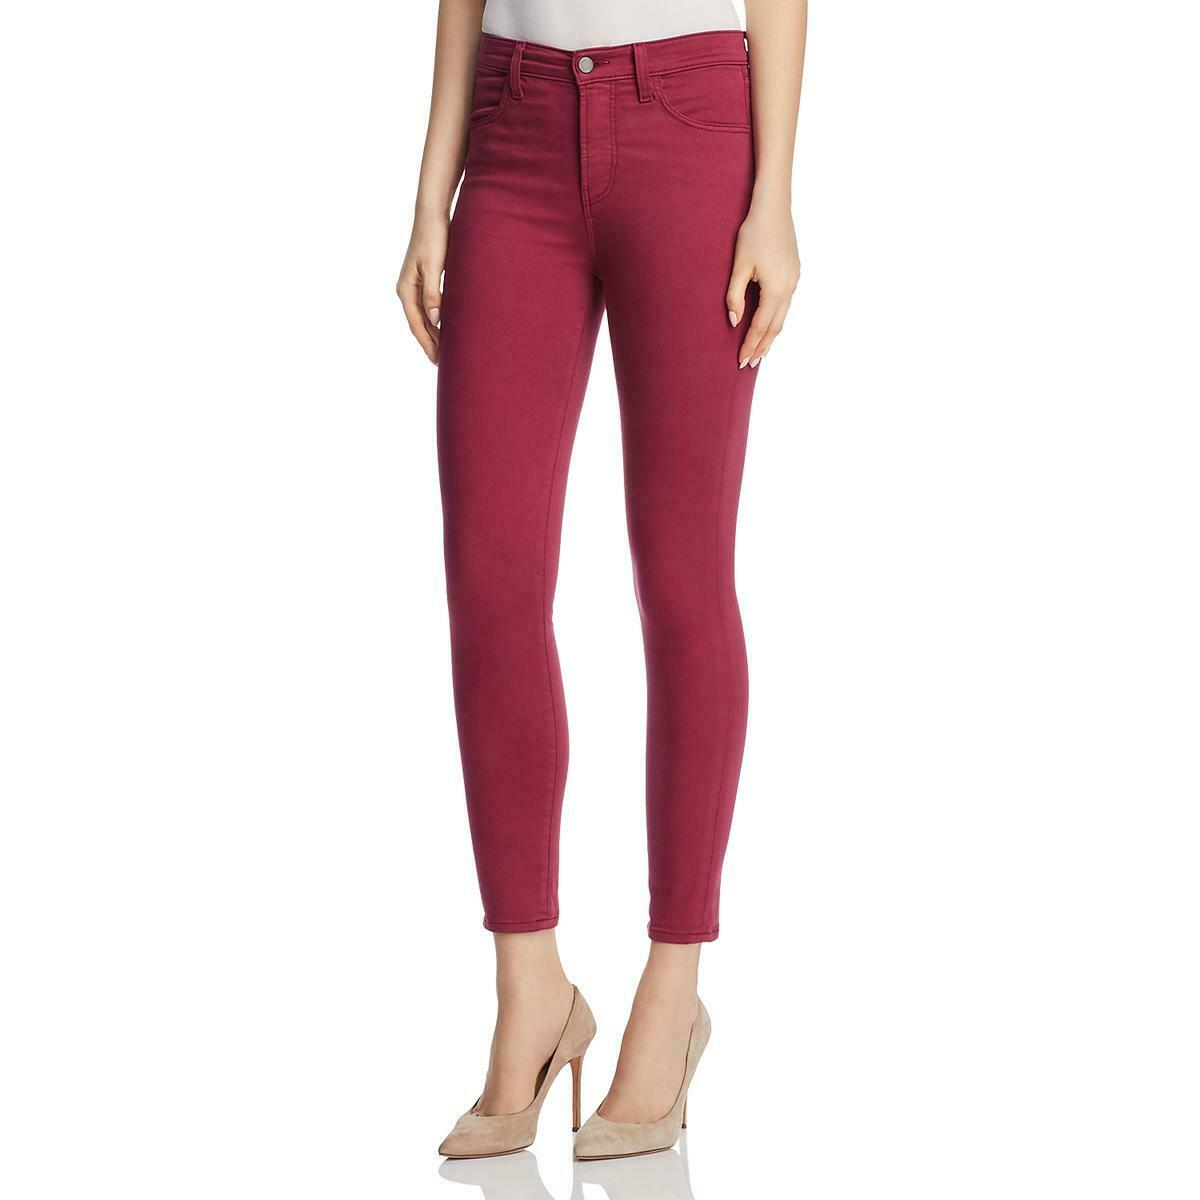 J Brand Womens Alana Pink High Rise colord Skinny Crop Jeans 26 BHFO 0715